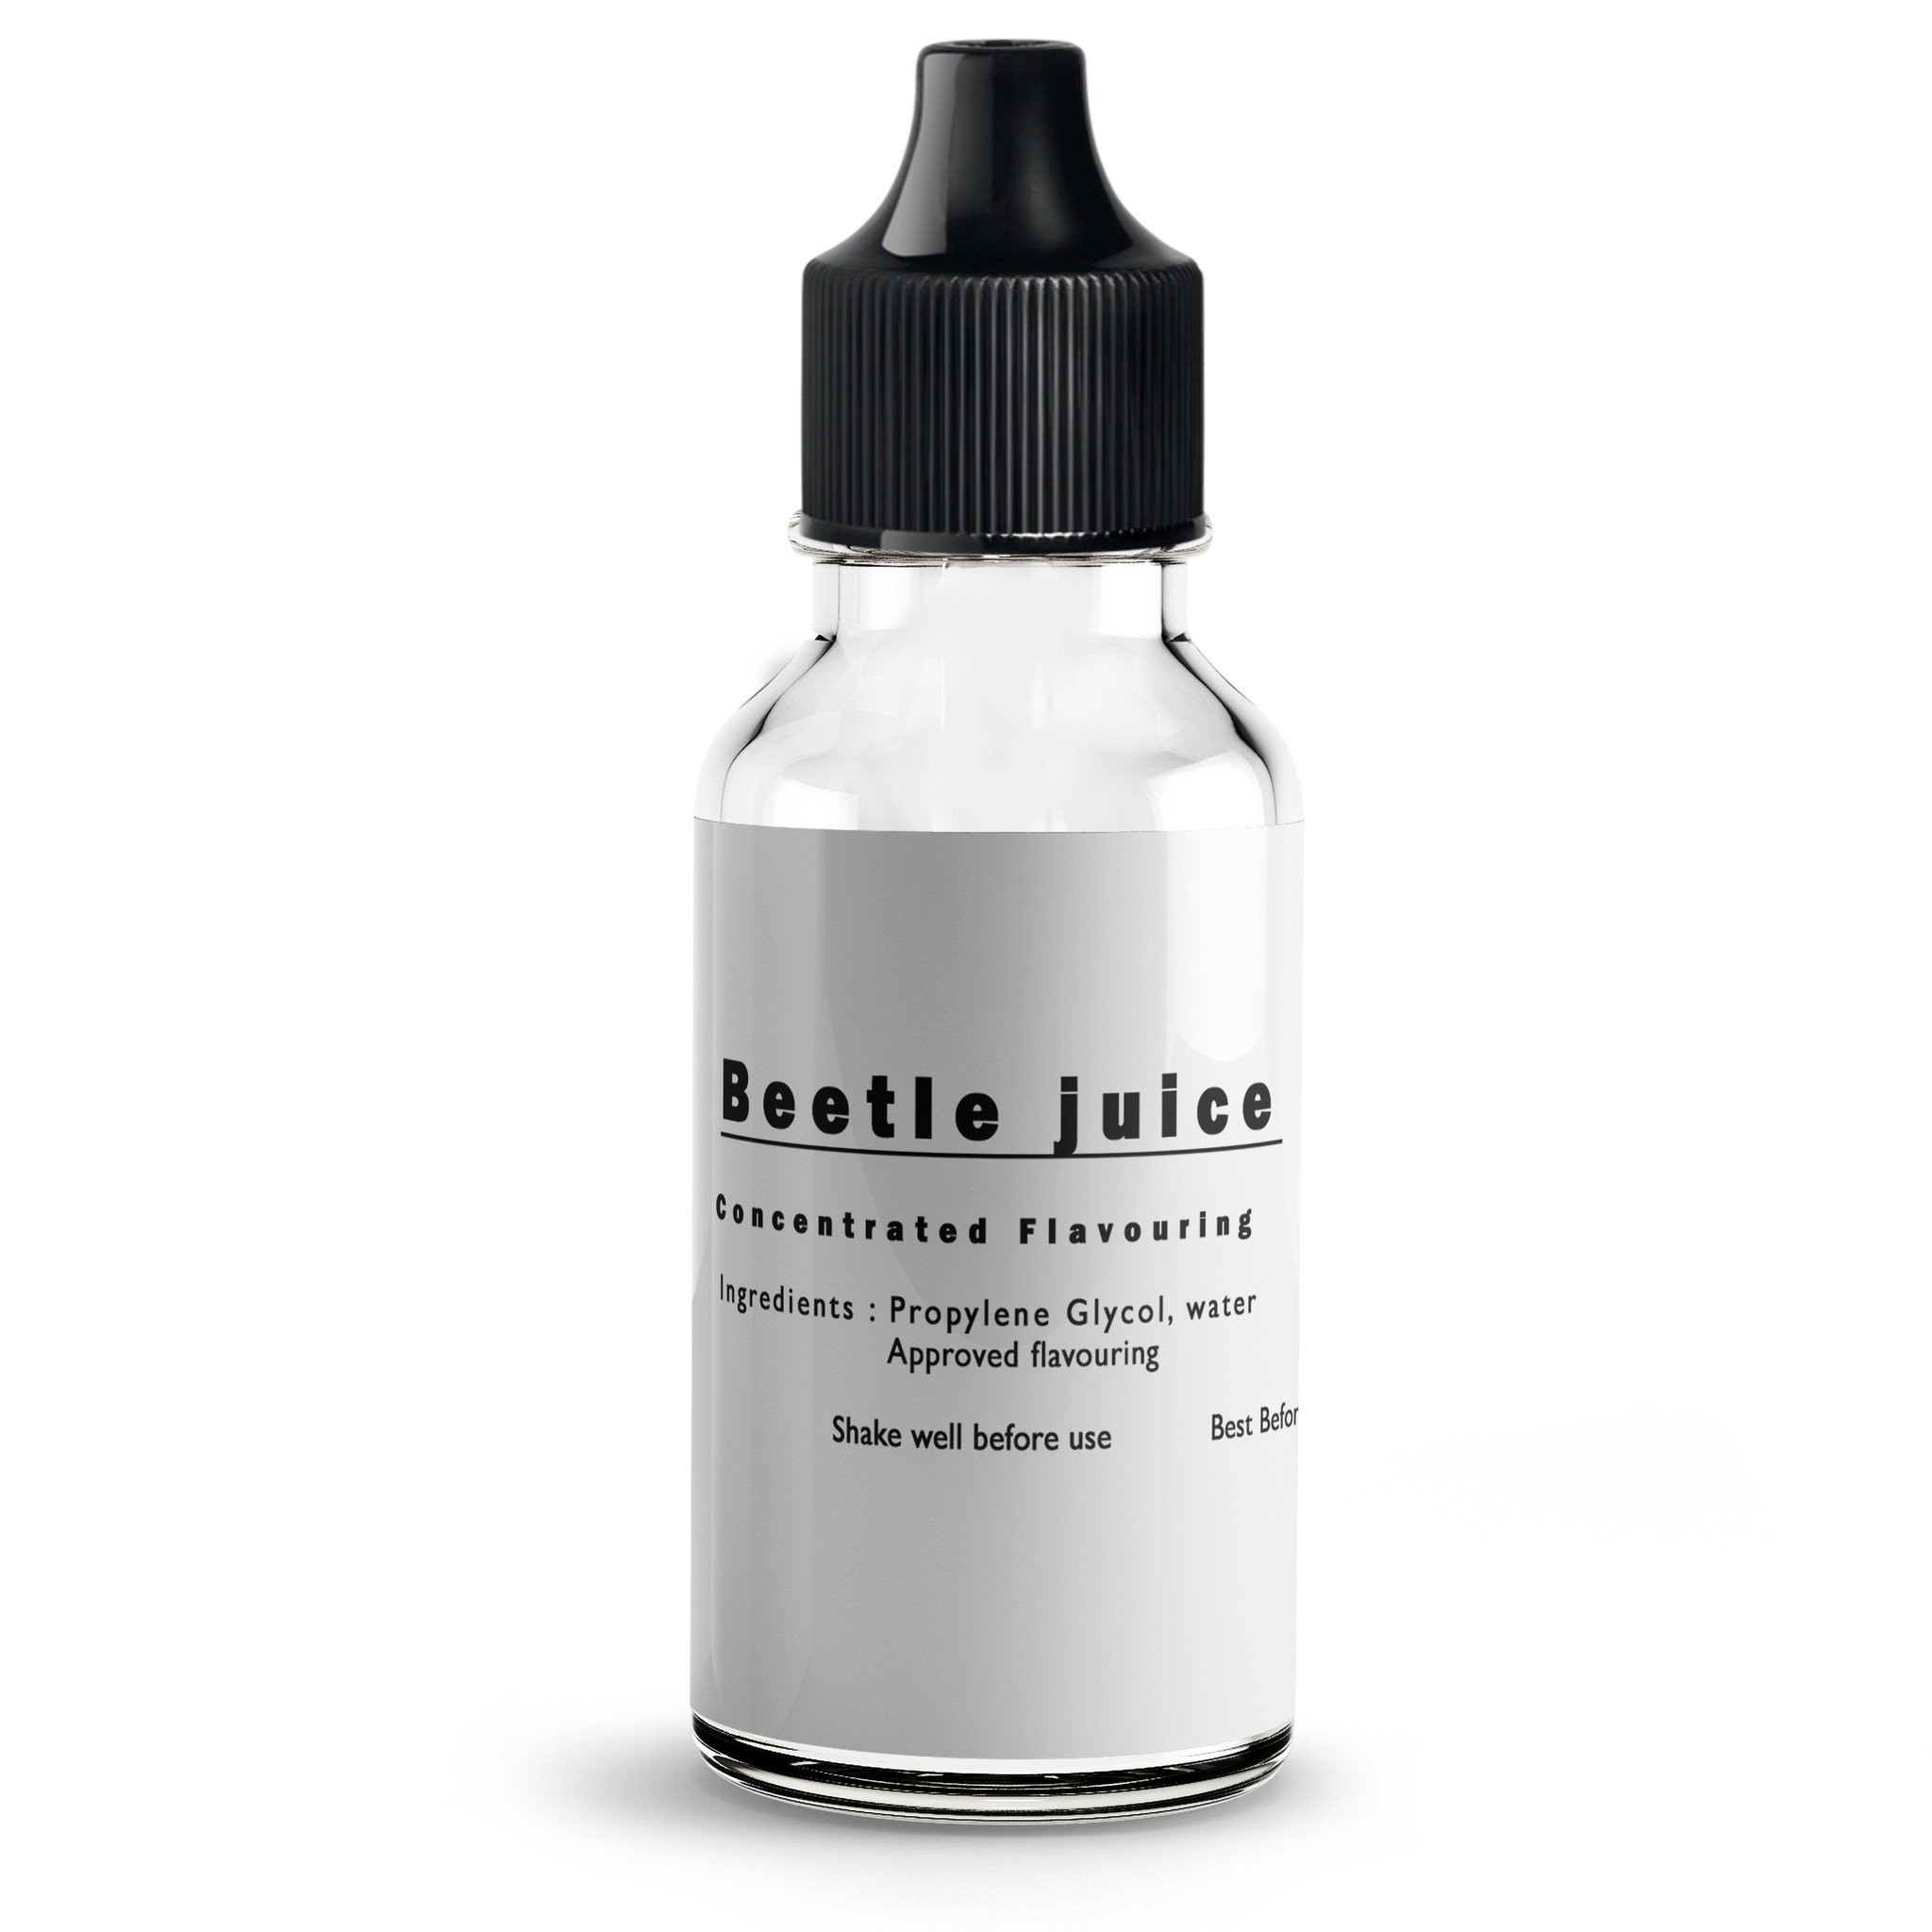 Beetle juice flavour concentrate for E liquids